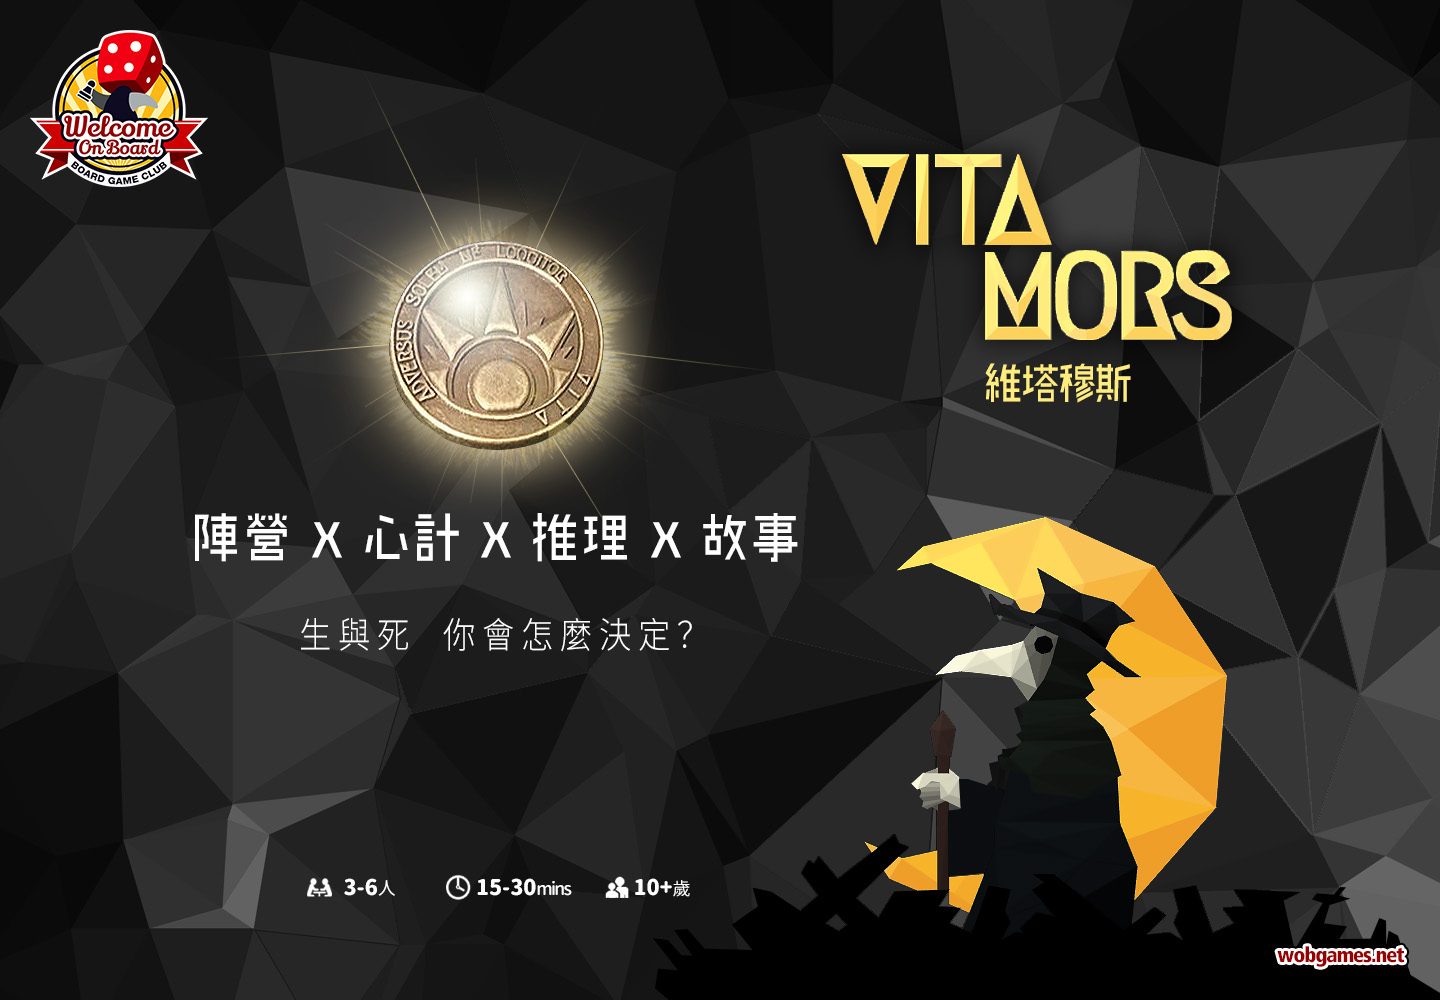 Vita Mors 維塔穆斯 | 香港桌遊天地 Welcome on Board Game Club Hong Kong